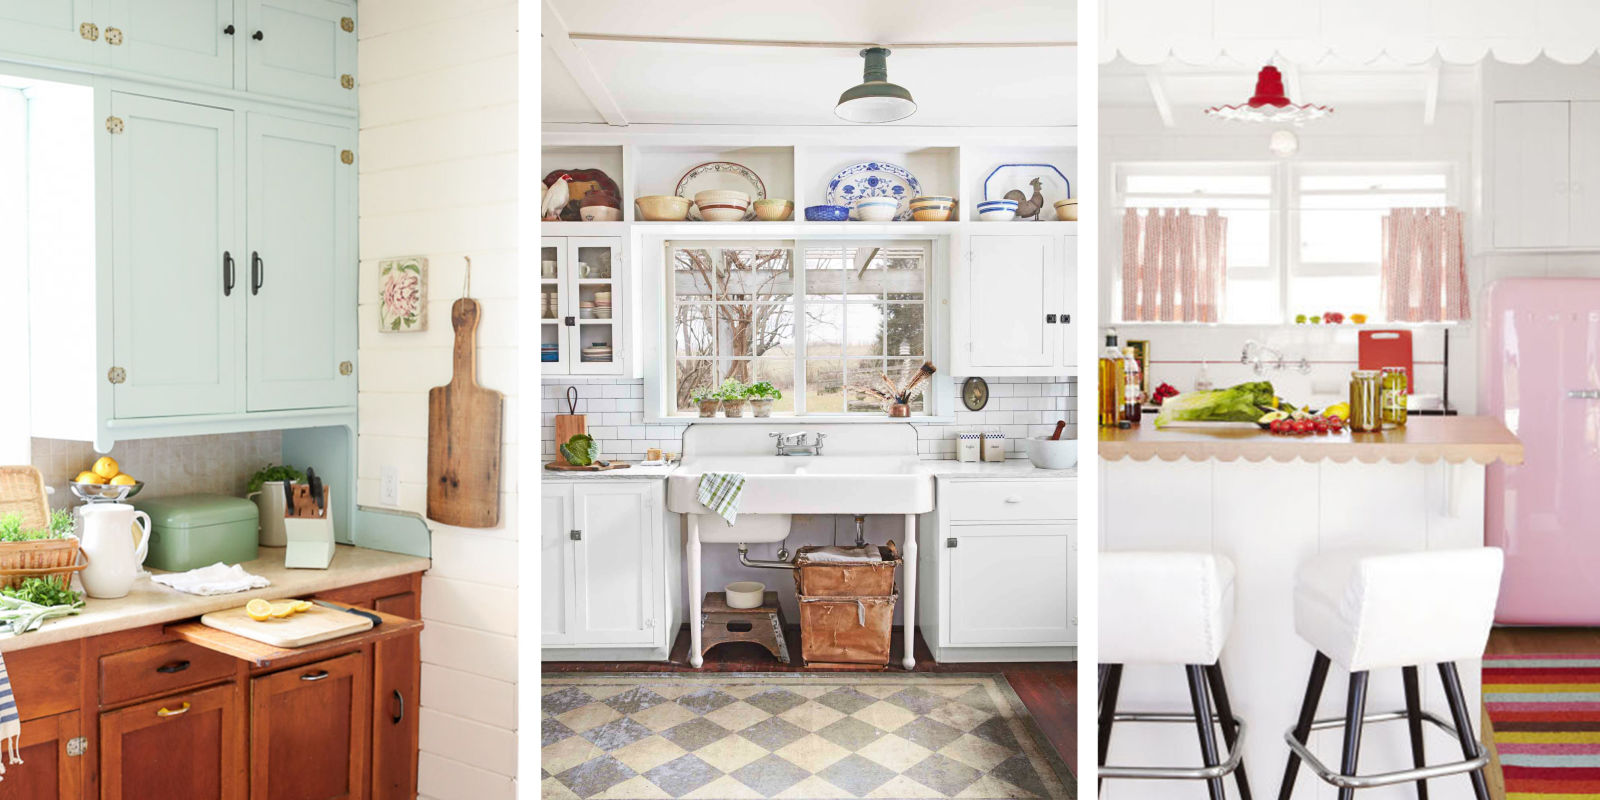 Kitchen Design Pictures Remodel Decor And Ideas ~ Vintage kitchen decorating ideas design inspiration